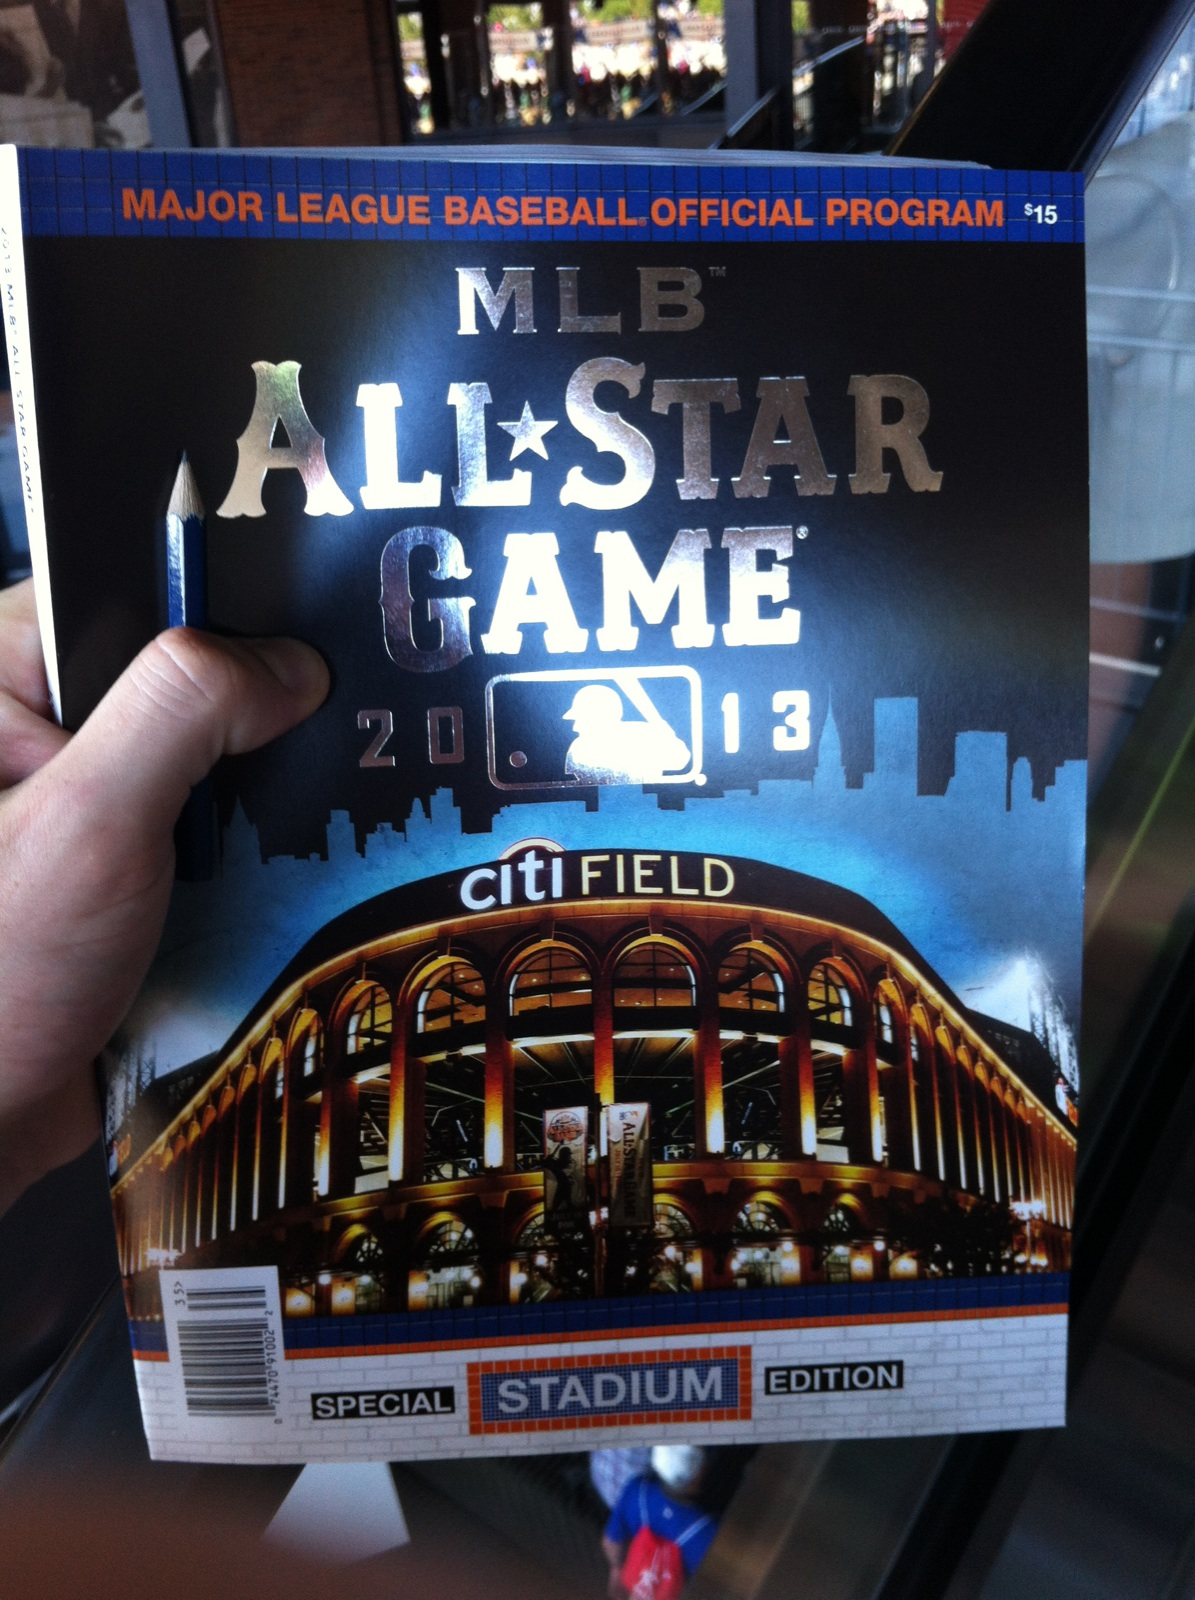 Sights From the 2013 All-Star Game